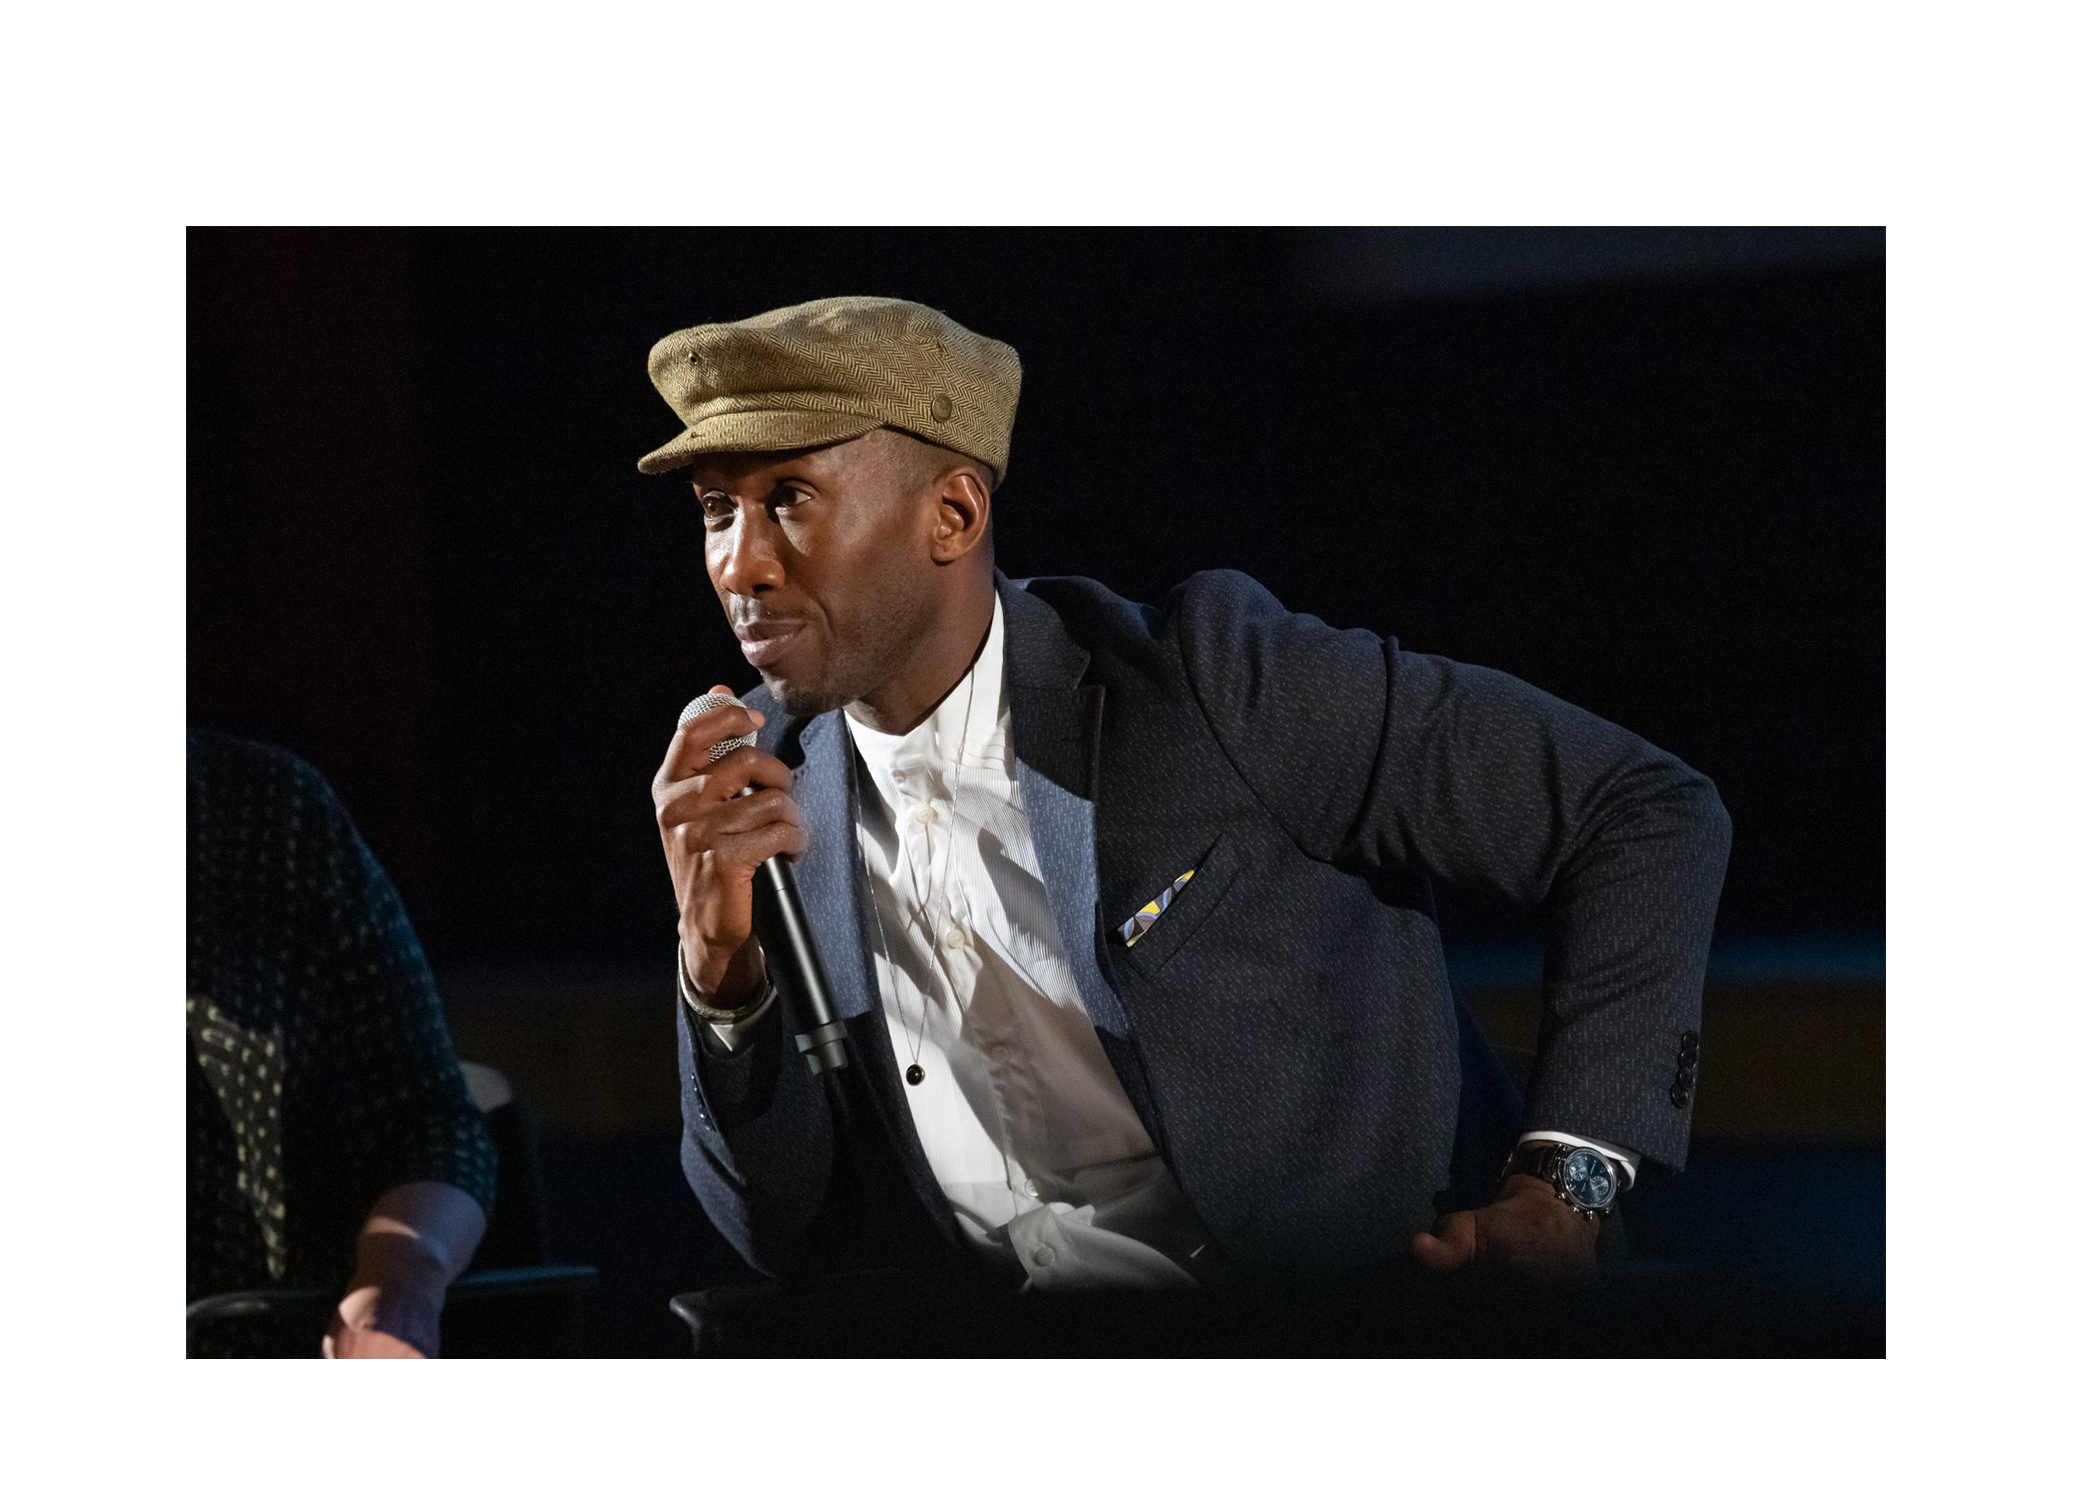 Oscar Winner Mahershala Ali '96 talks about the film Green Book at a special advance showing to benefit the High Potential Program at the Rheem Theater in Oct. 2018.